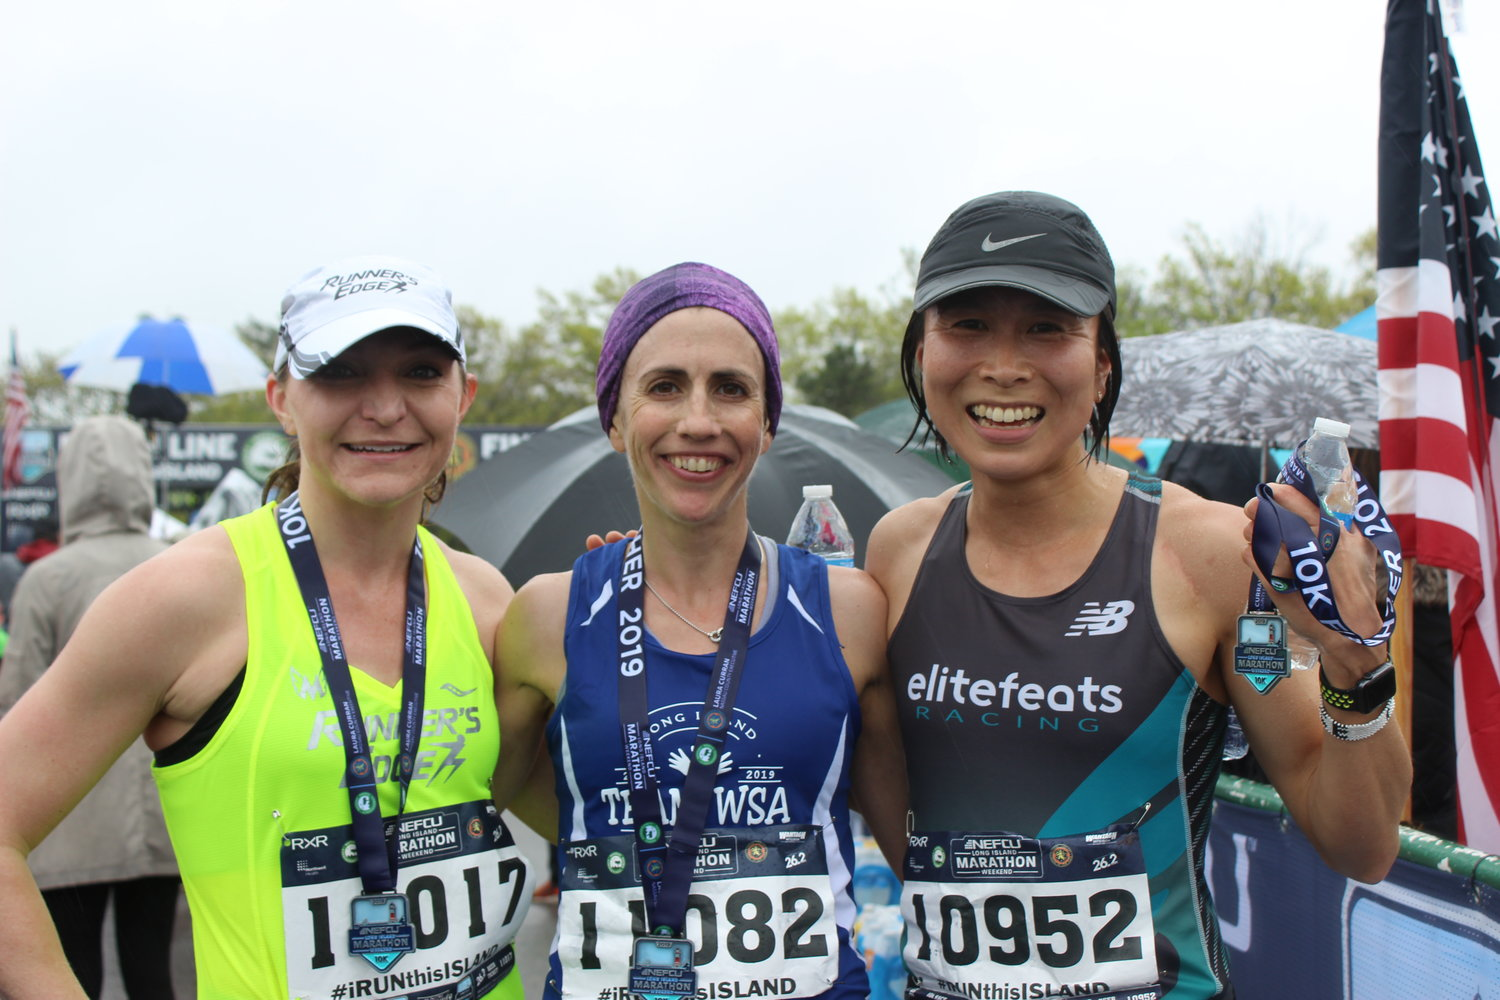 Michele Walker, left, of Massapequa, Shari Klarfeld, of Plainview, and Michiko Clarke, of Westbury, finished first, second and third among the women competing in the 10K race at the NEFCU 2019 Long Island Marathon on Sunday.